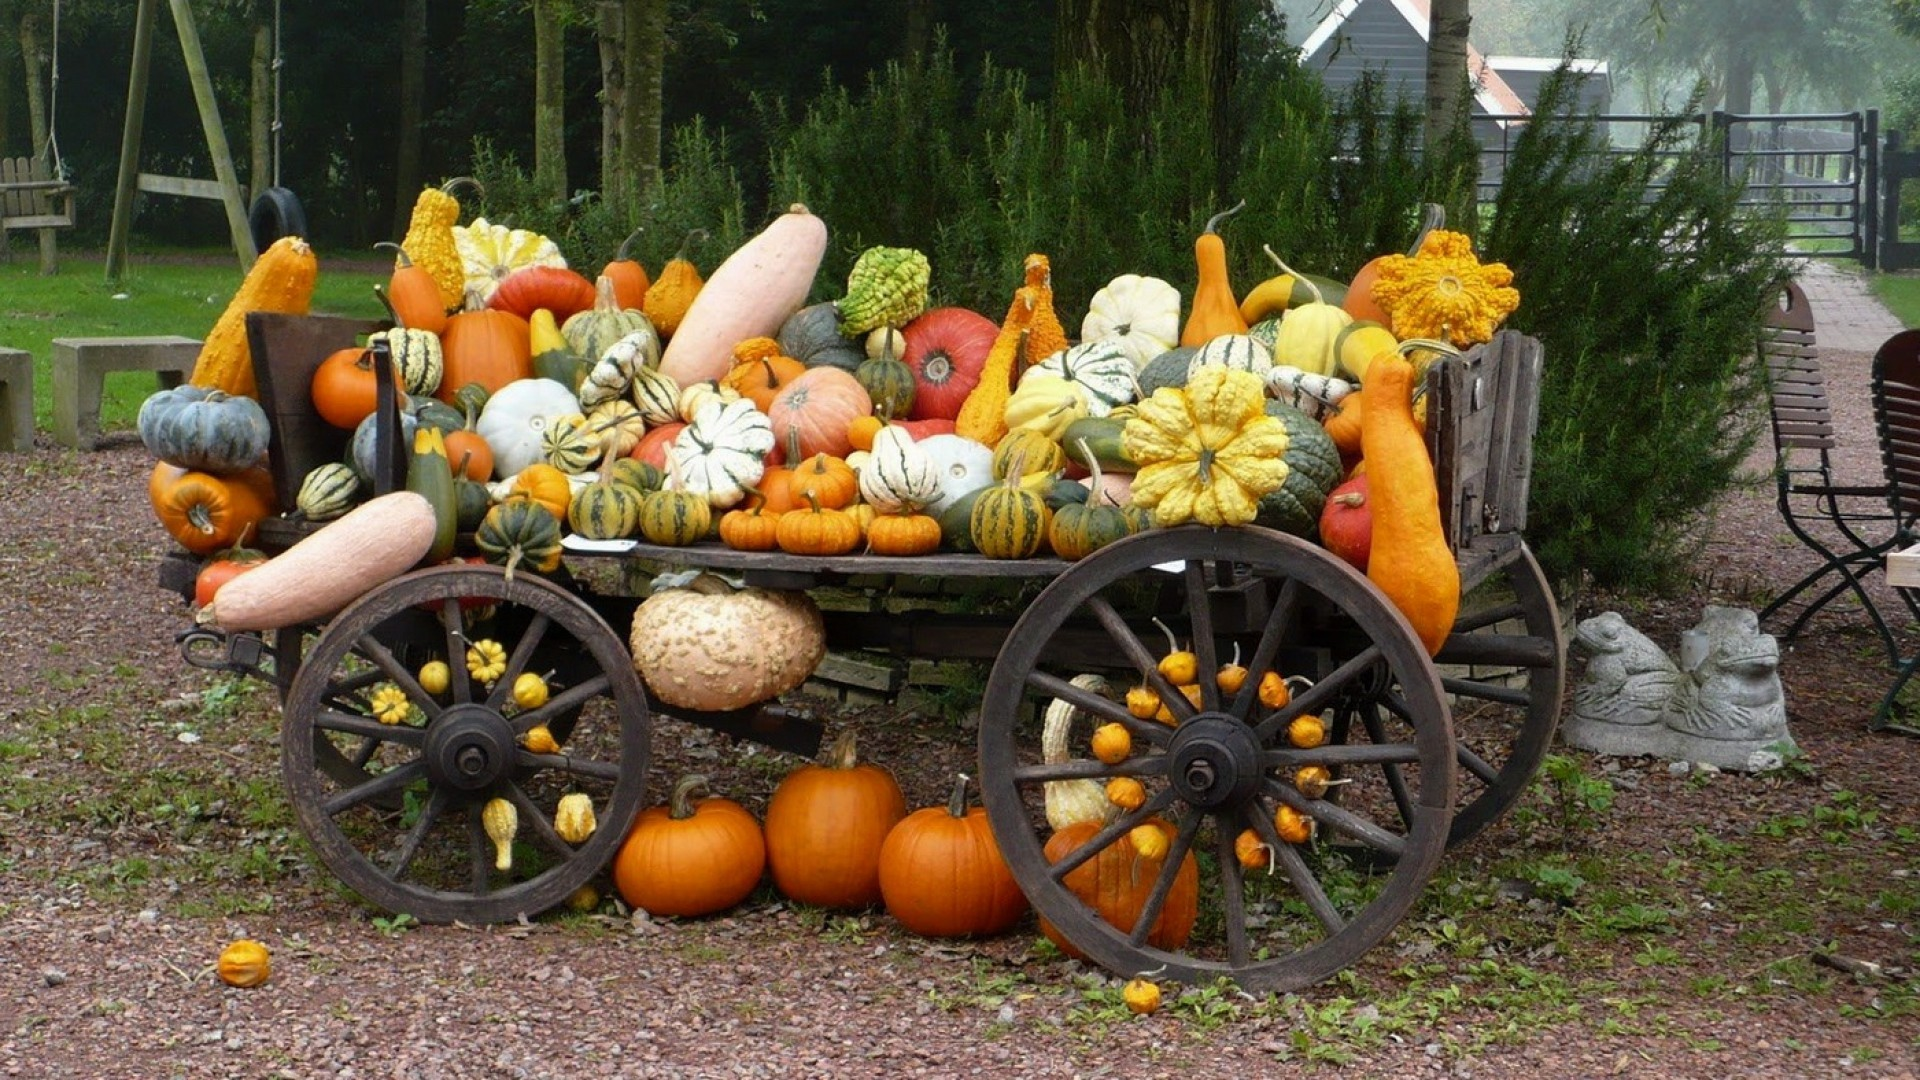 Wallpaper vehicle, pumpkin, crop, grades, variety, autumn